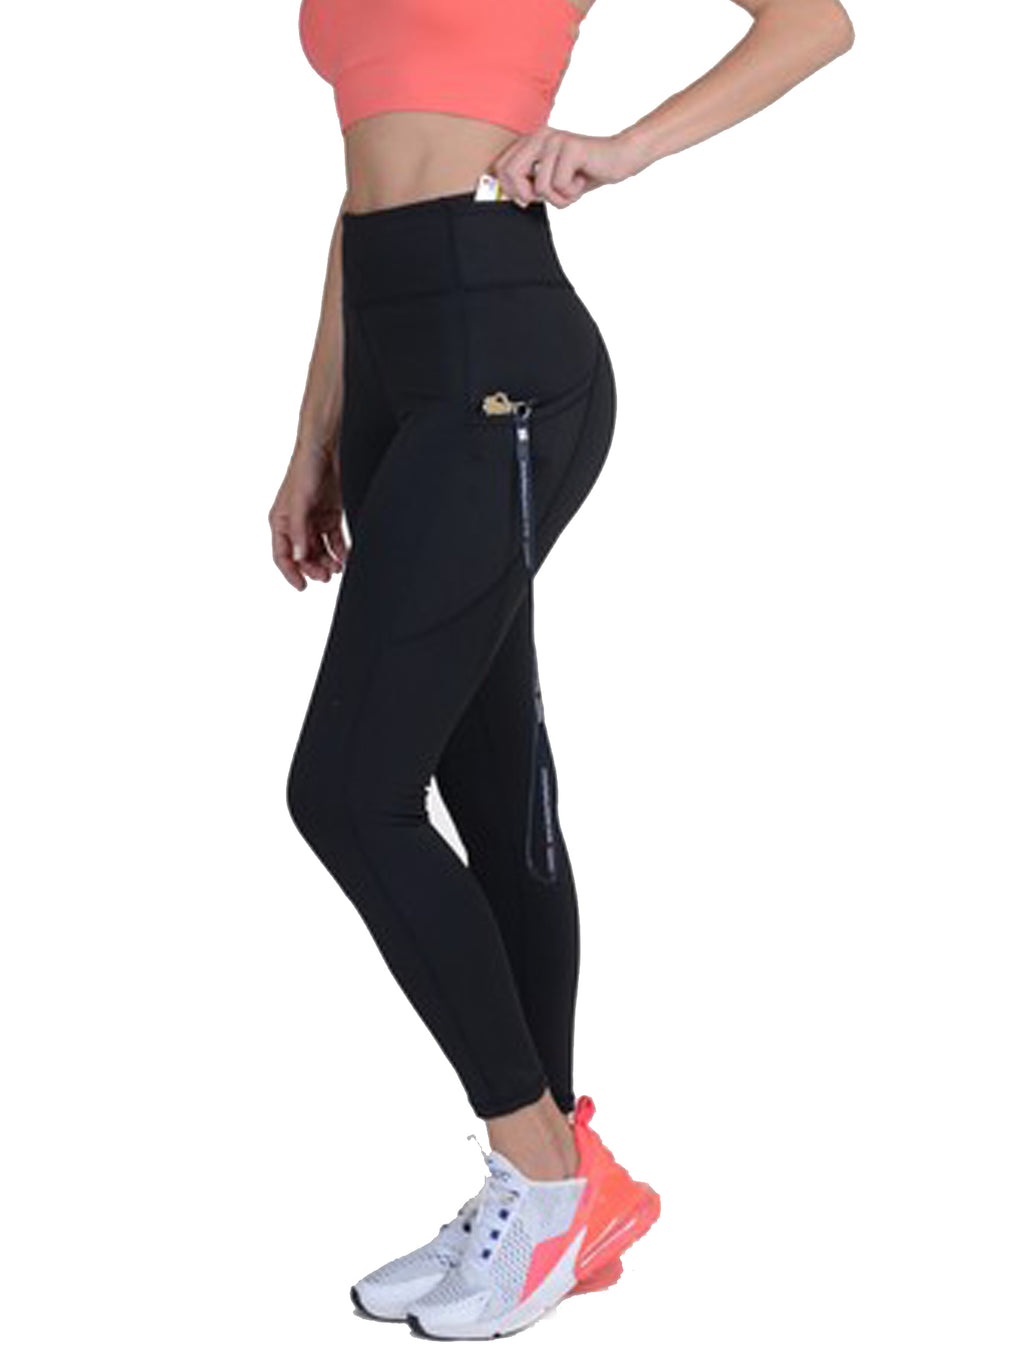 Black High Waist Leggings With Tech Pockets